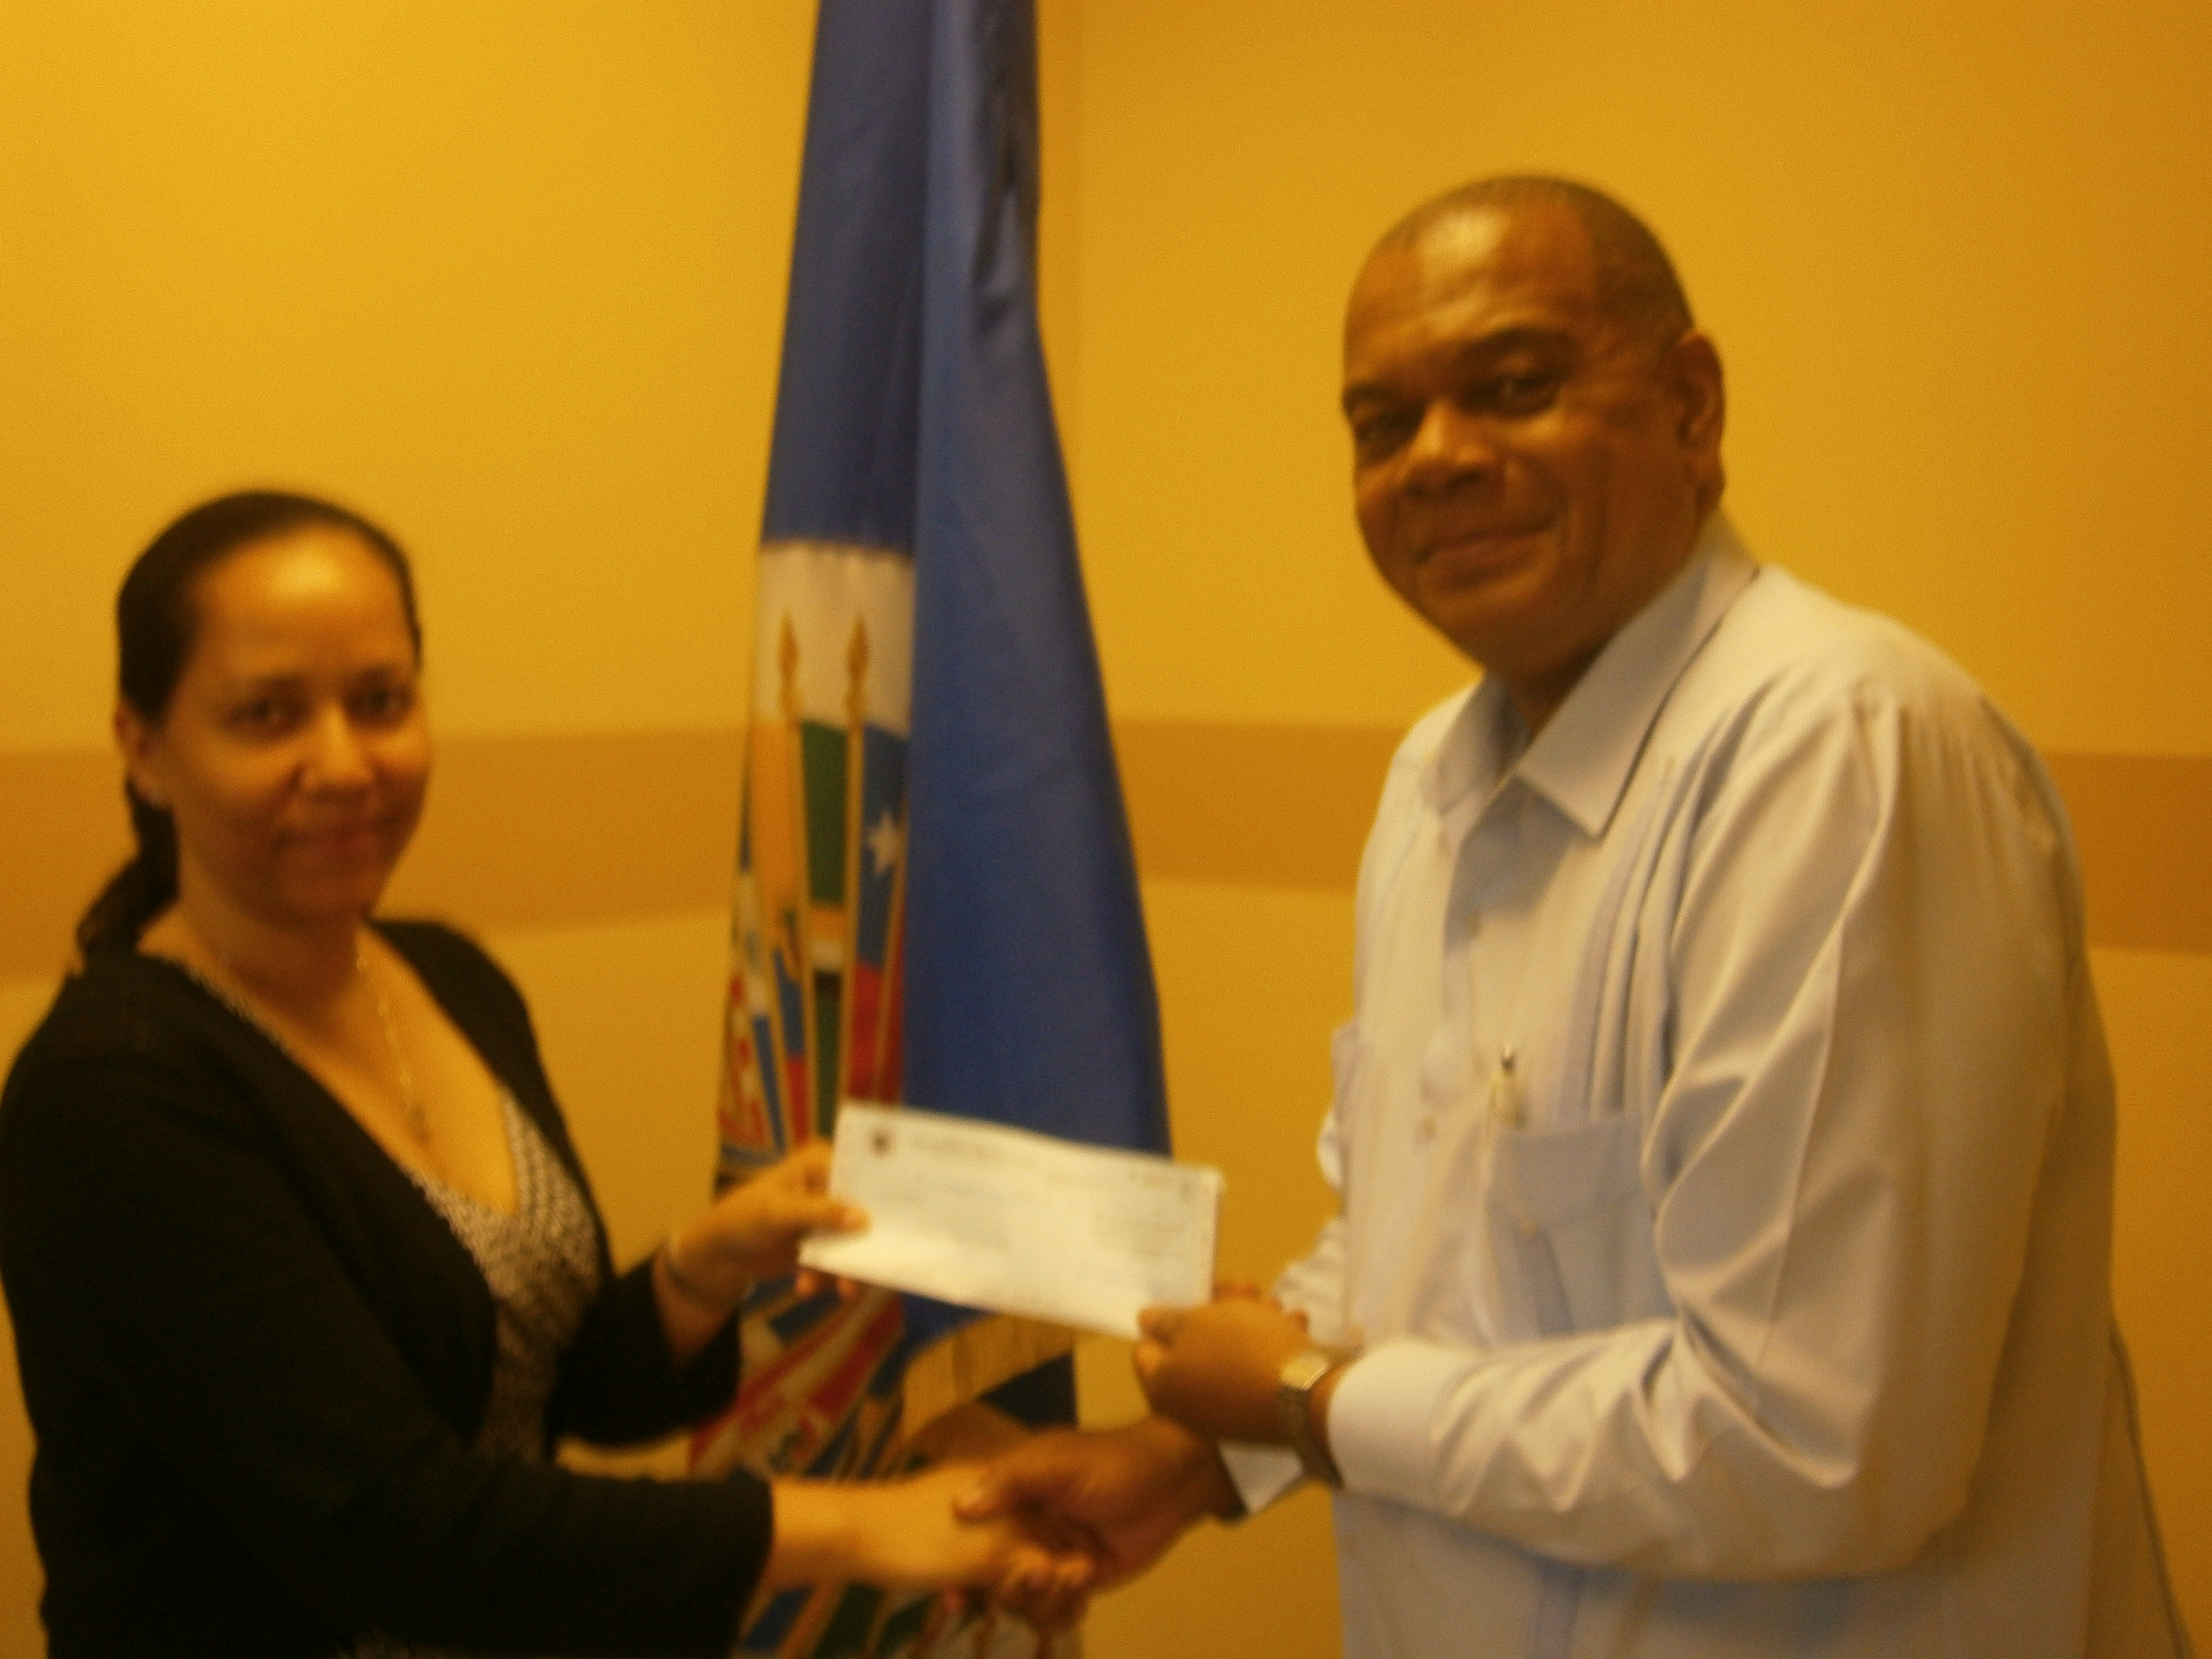 The OAS Representative presented check to Mr. Michael Tucker, Executive Director of National Council on Drug Abuse in accord with MOU between CICAD and Jamaica's National Council on Drug Abuse, to conduct a prison survey on drugs and crime.